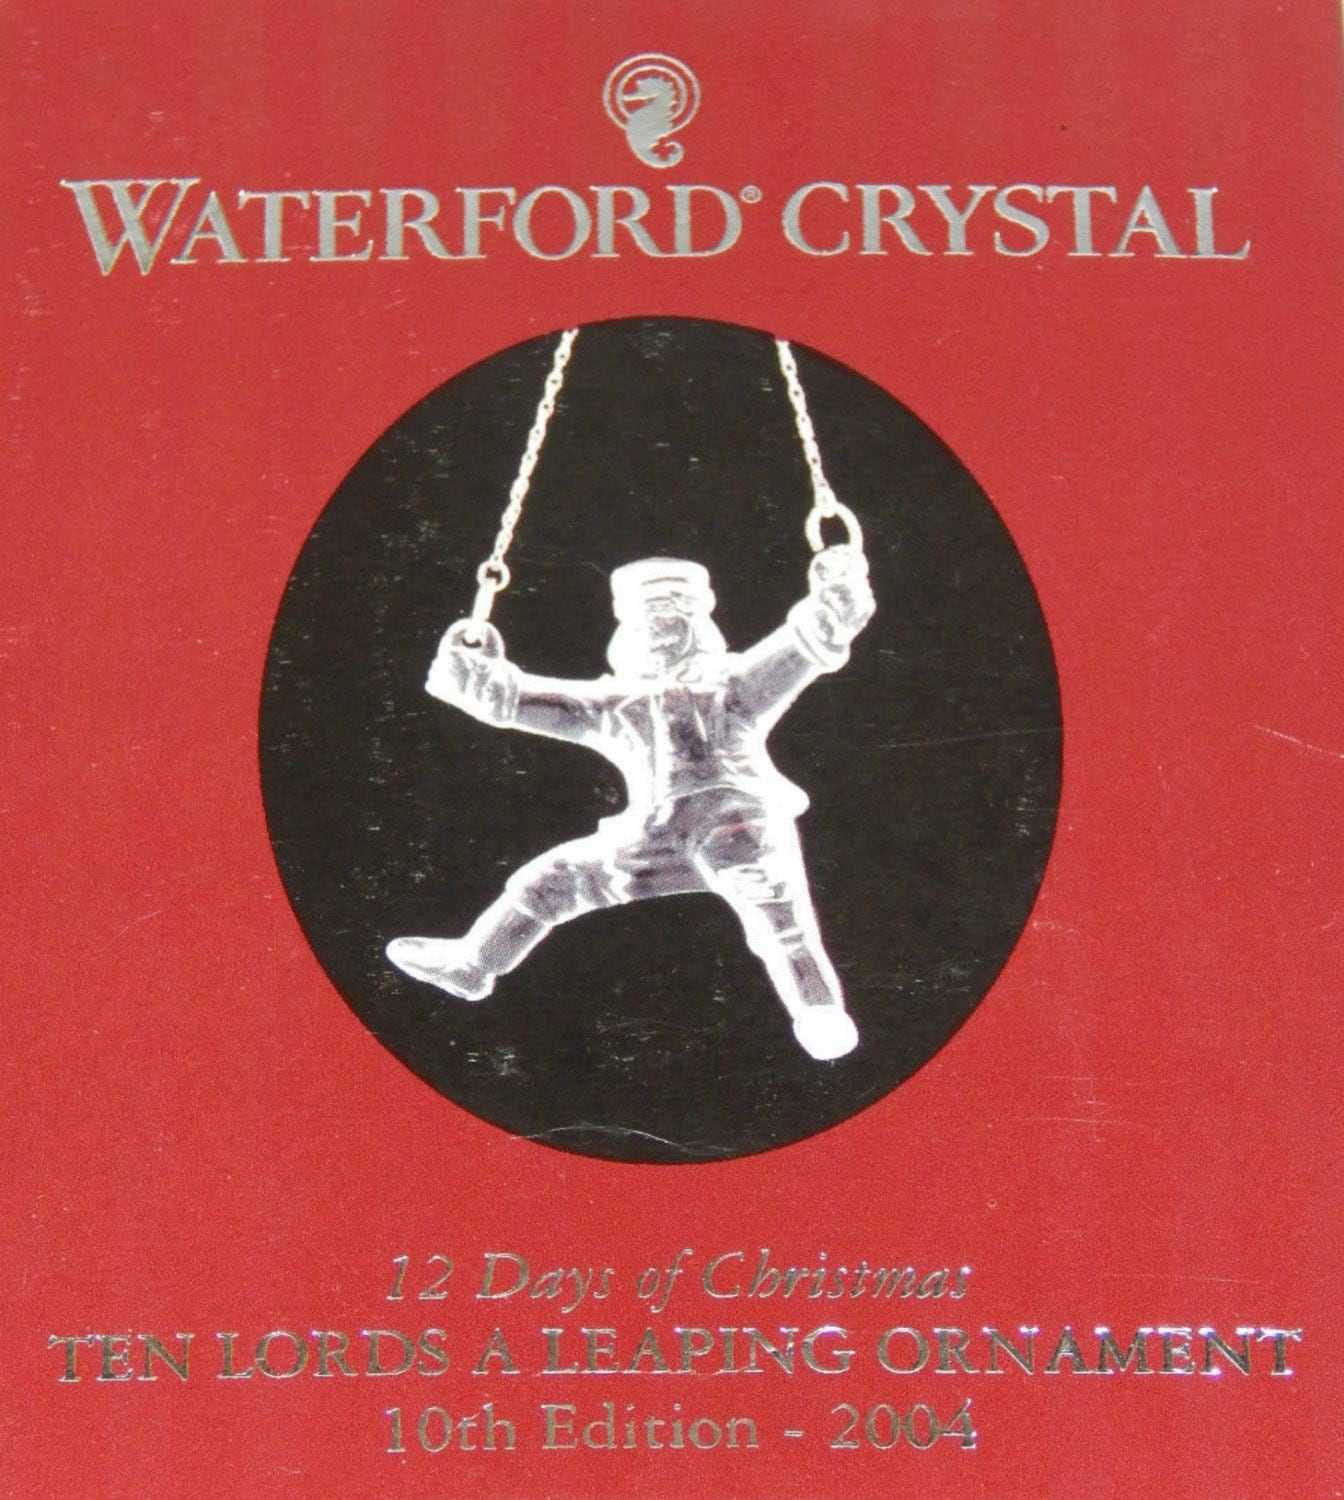 Waterford 12 Days of Christmas Ten Lords Leaping Ornament